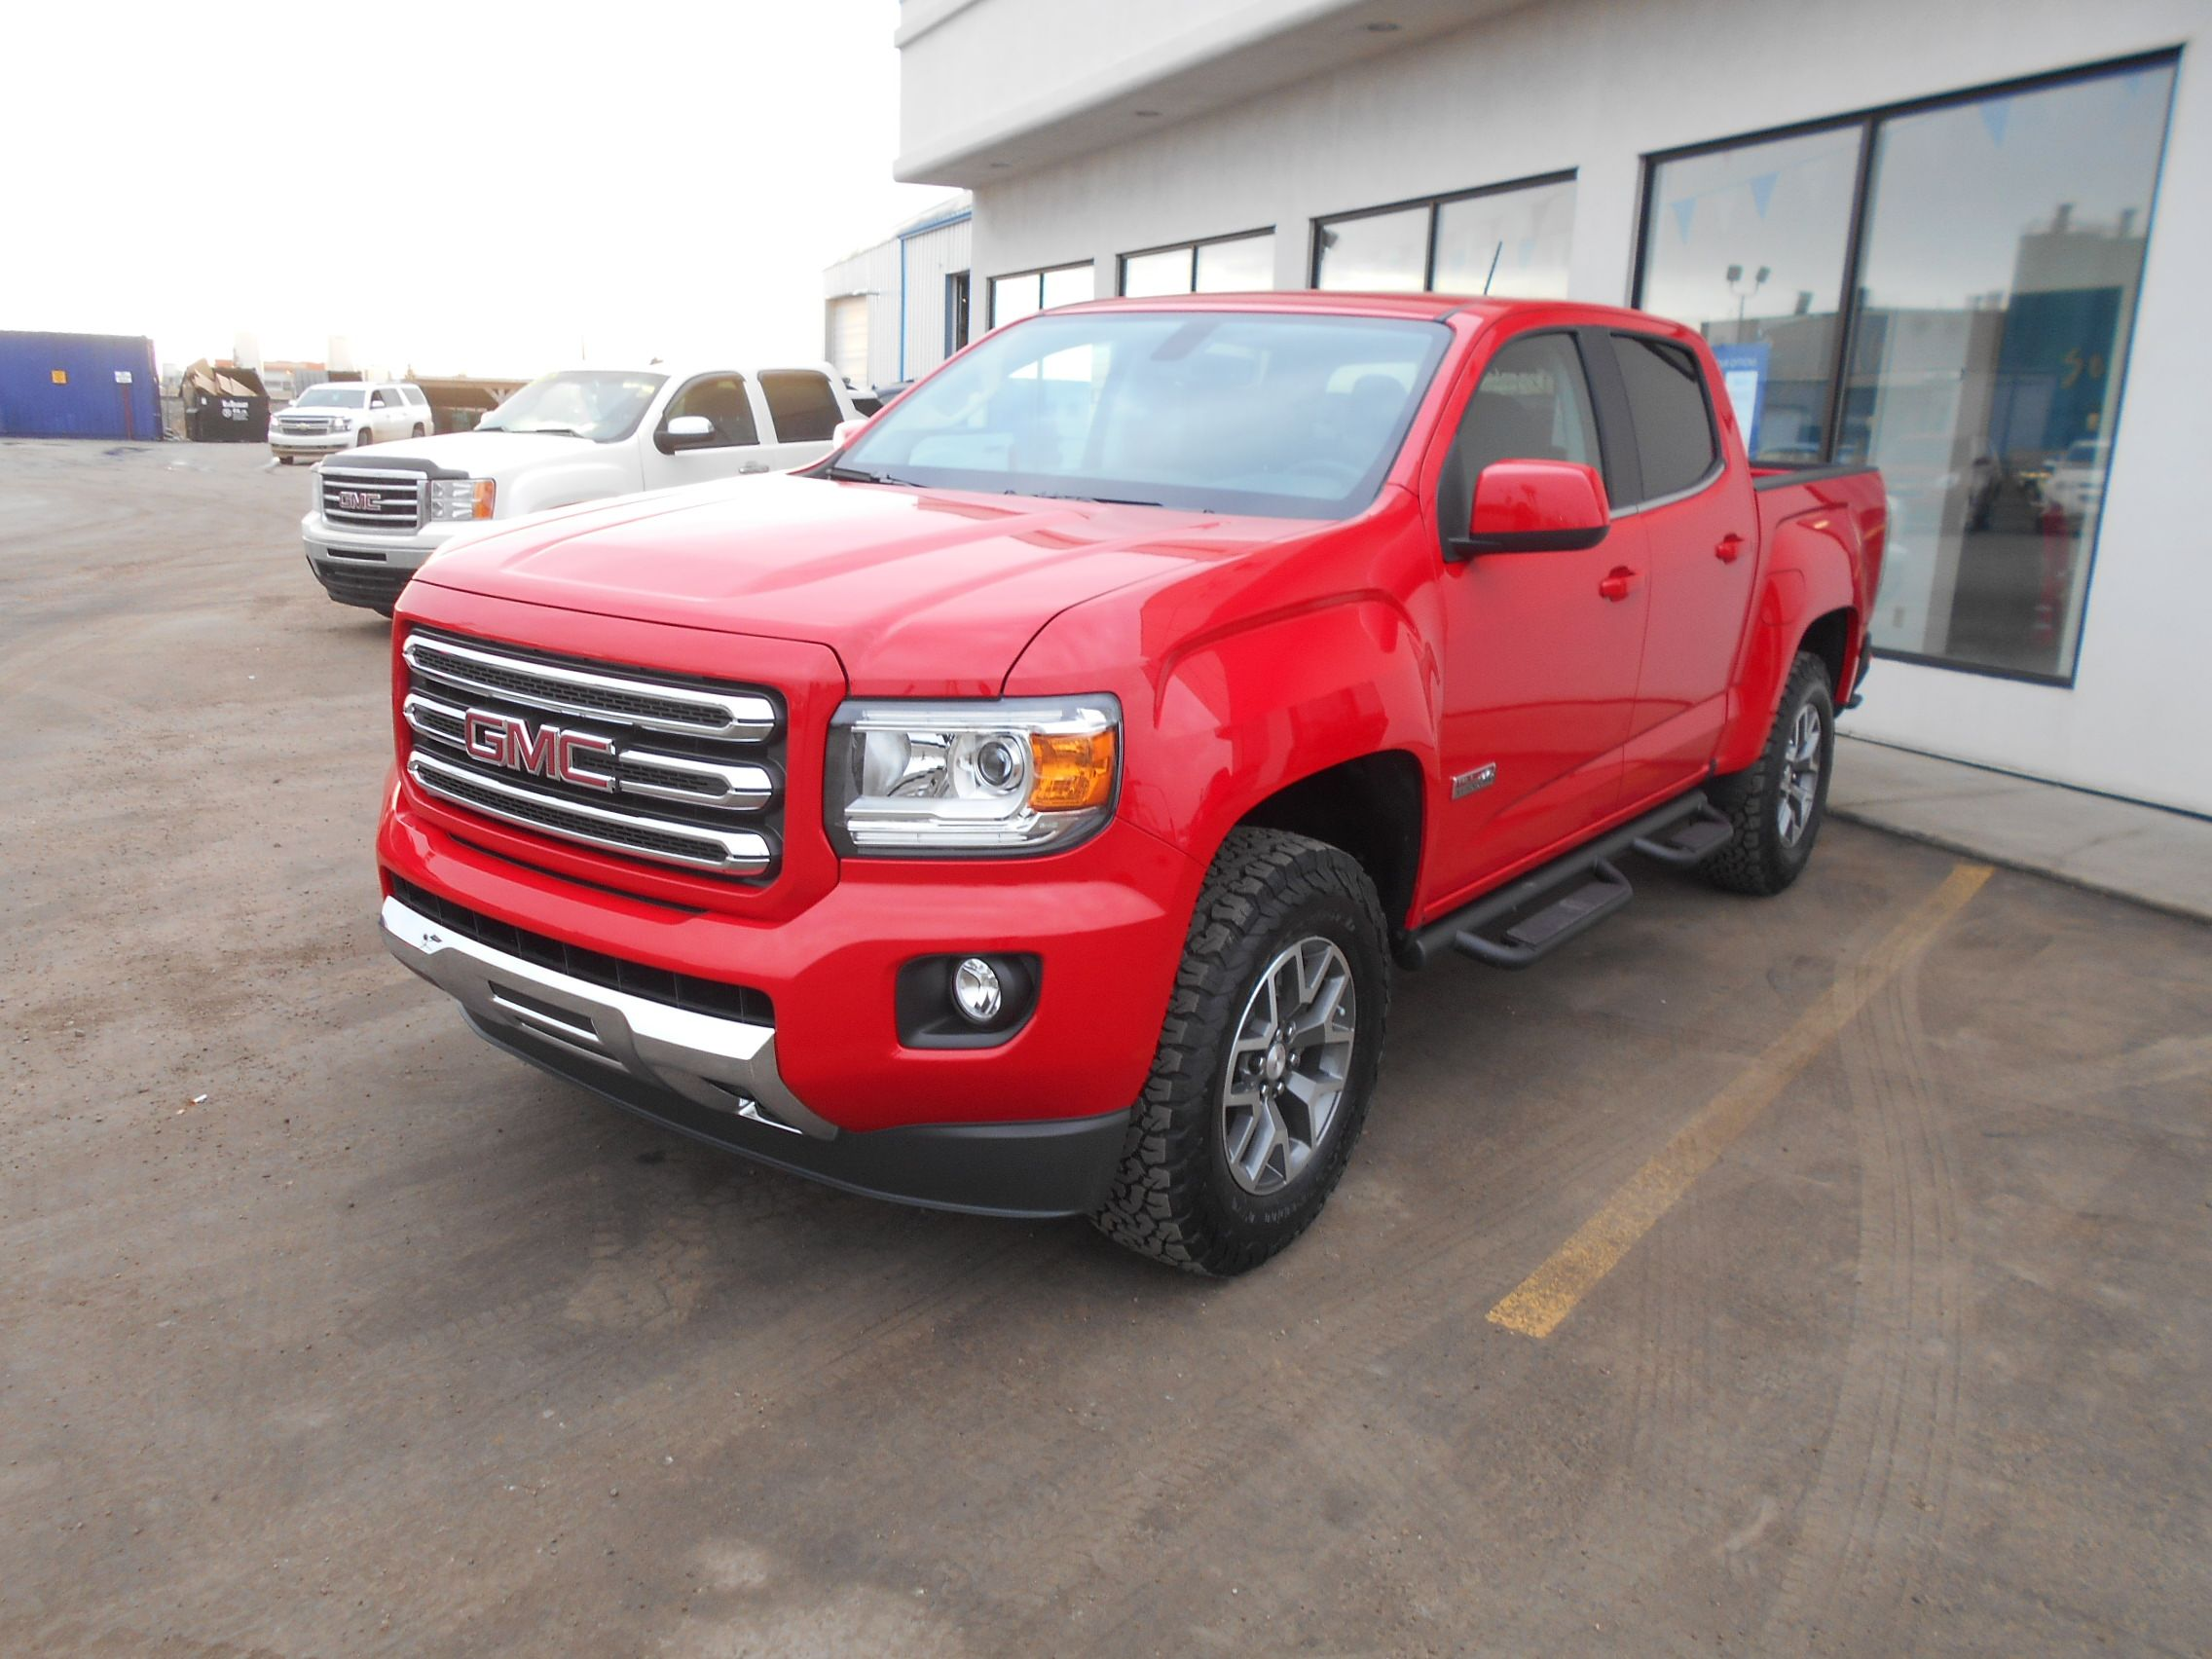 2015 gmc canyon schwab custom truck comes equipped with leveling kit upgraded tires gm off road running boards schwabchevro custom trucks gmc canyon gmc 2015 gmc canyon schwab custom truck